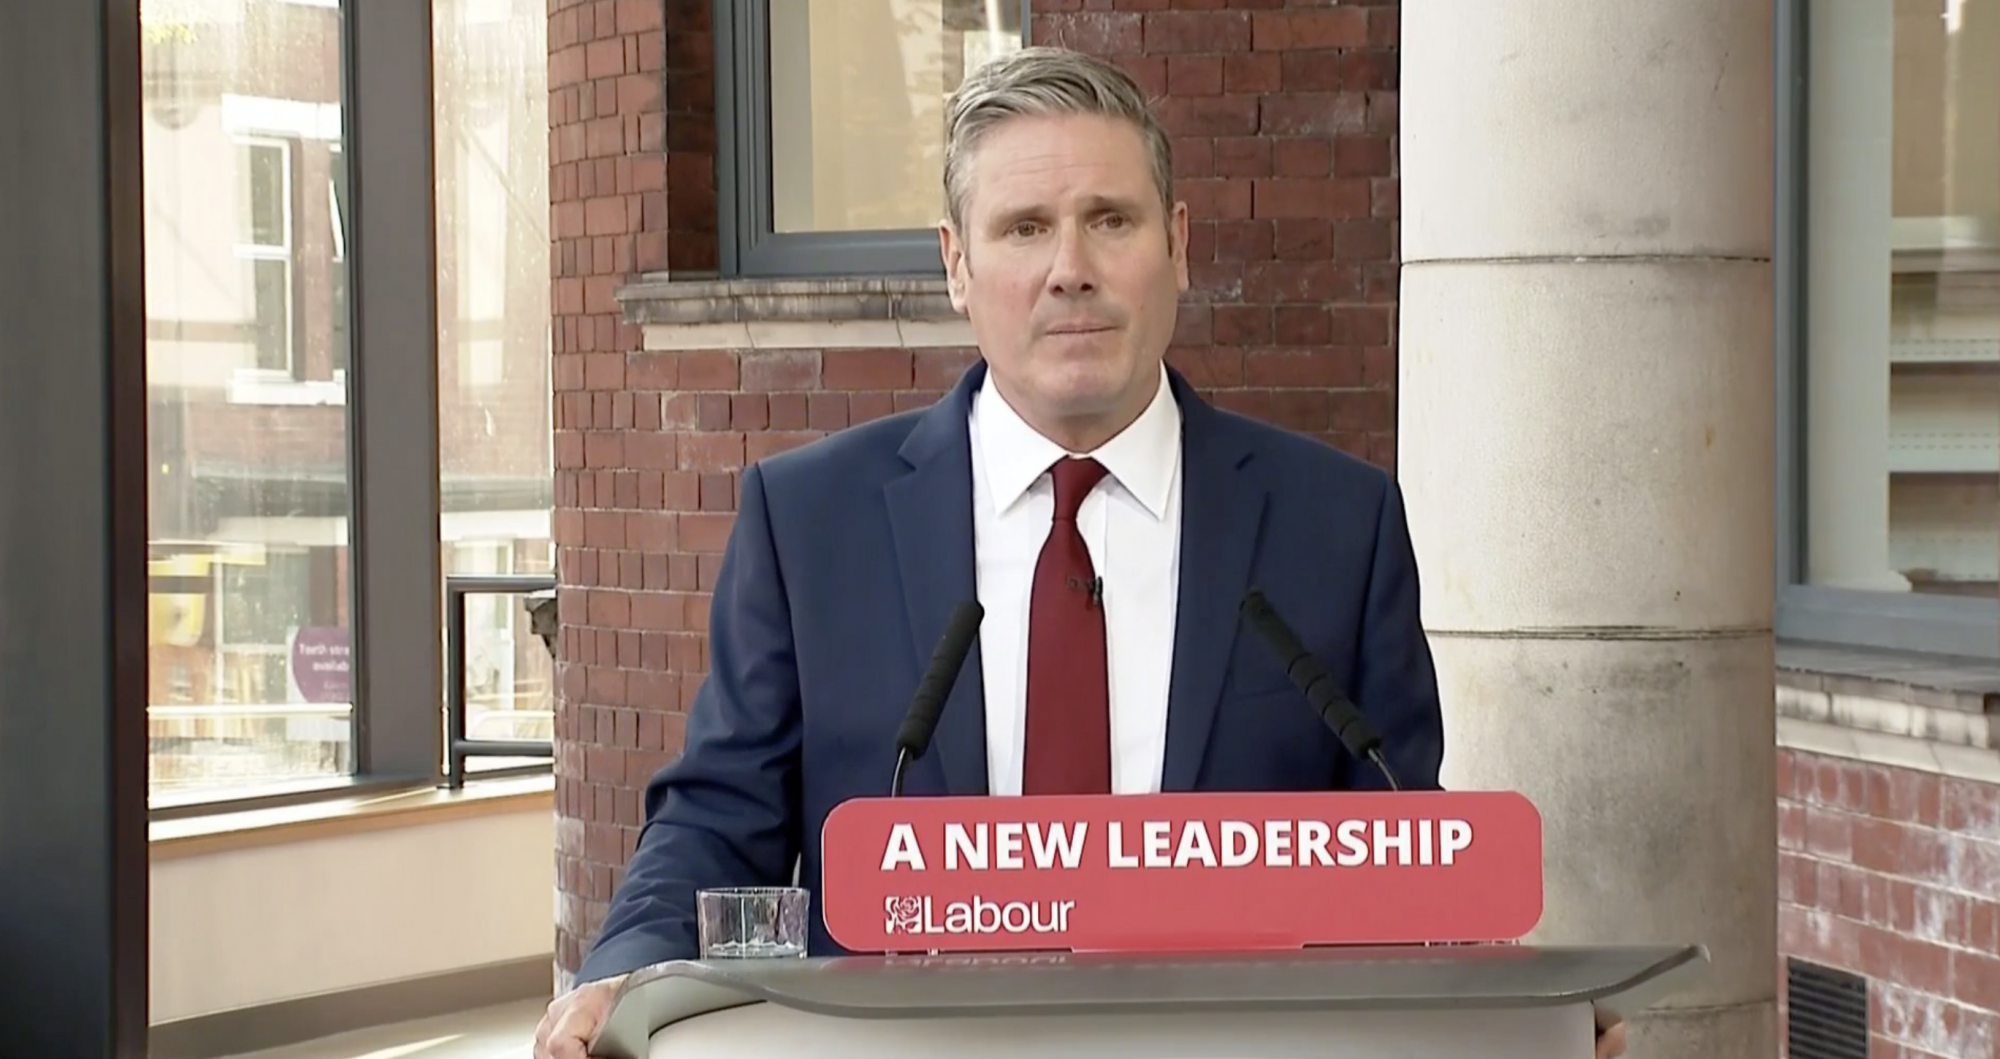 Starmer urges former Labour voters to return to fold in first conference speech as leader - channel 4